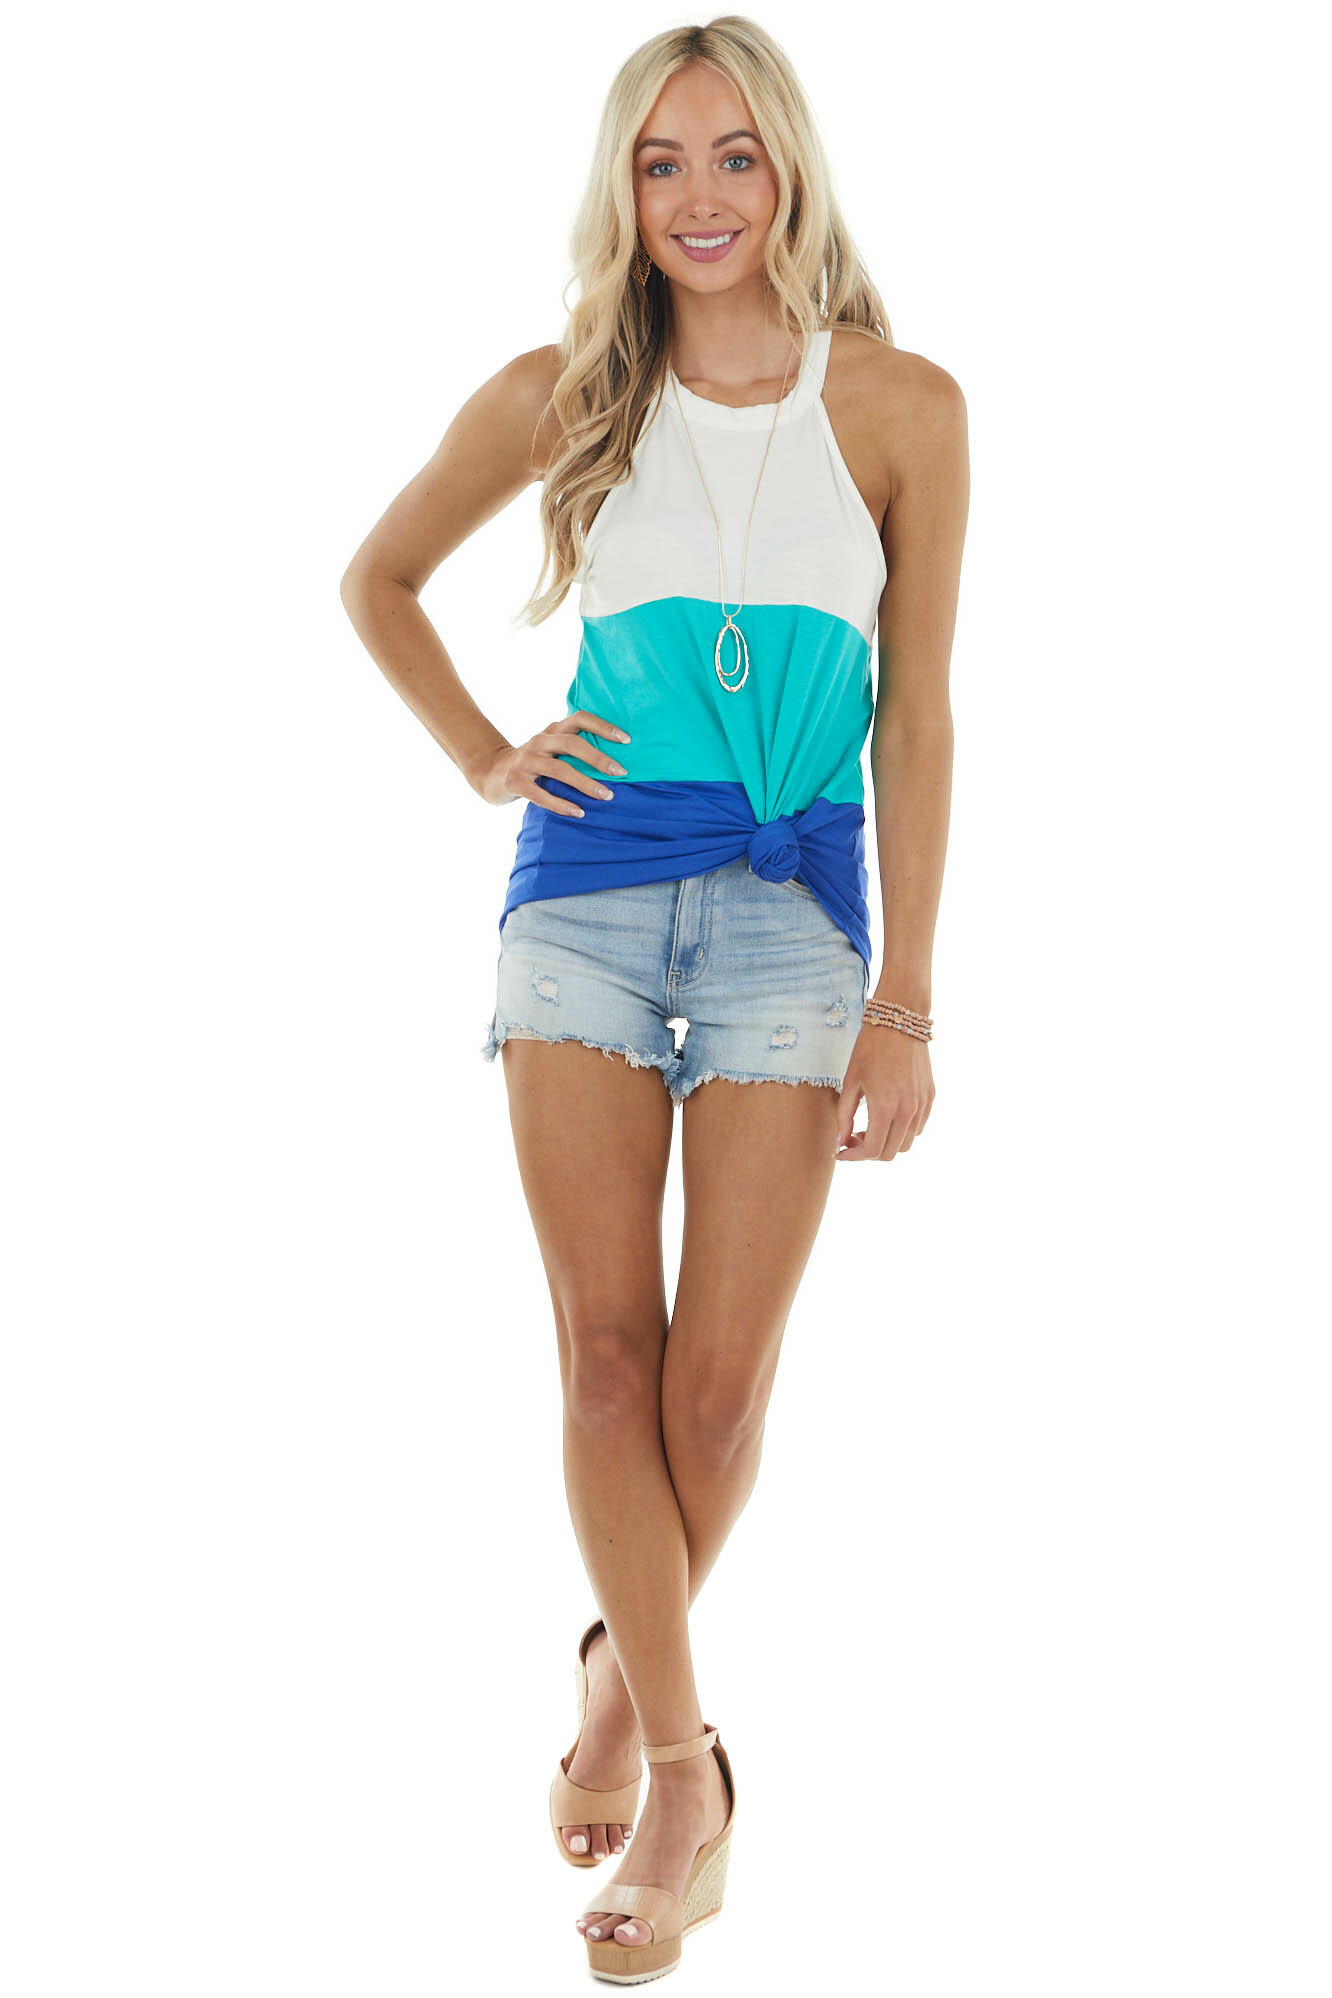 Deep Turquoise Colorblock Halter Neckline Stretchy Knit Top